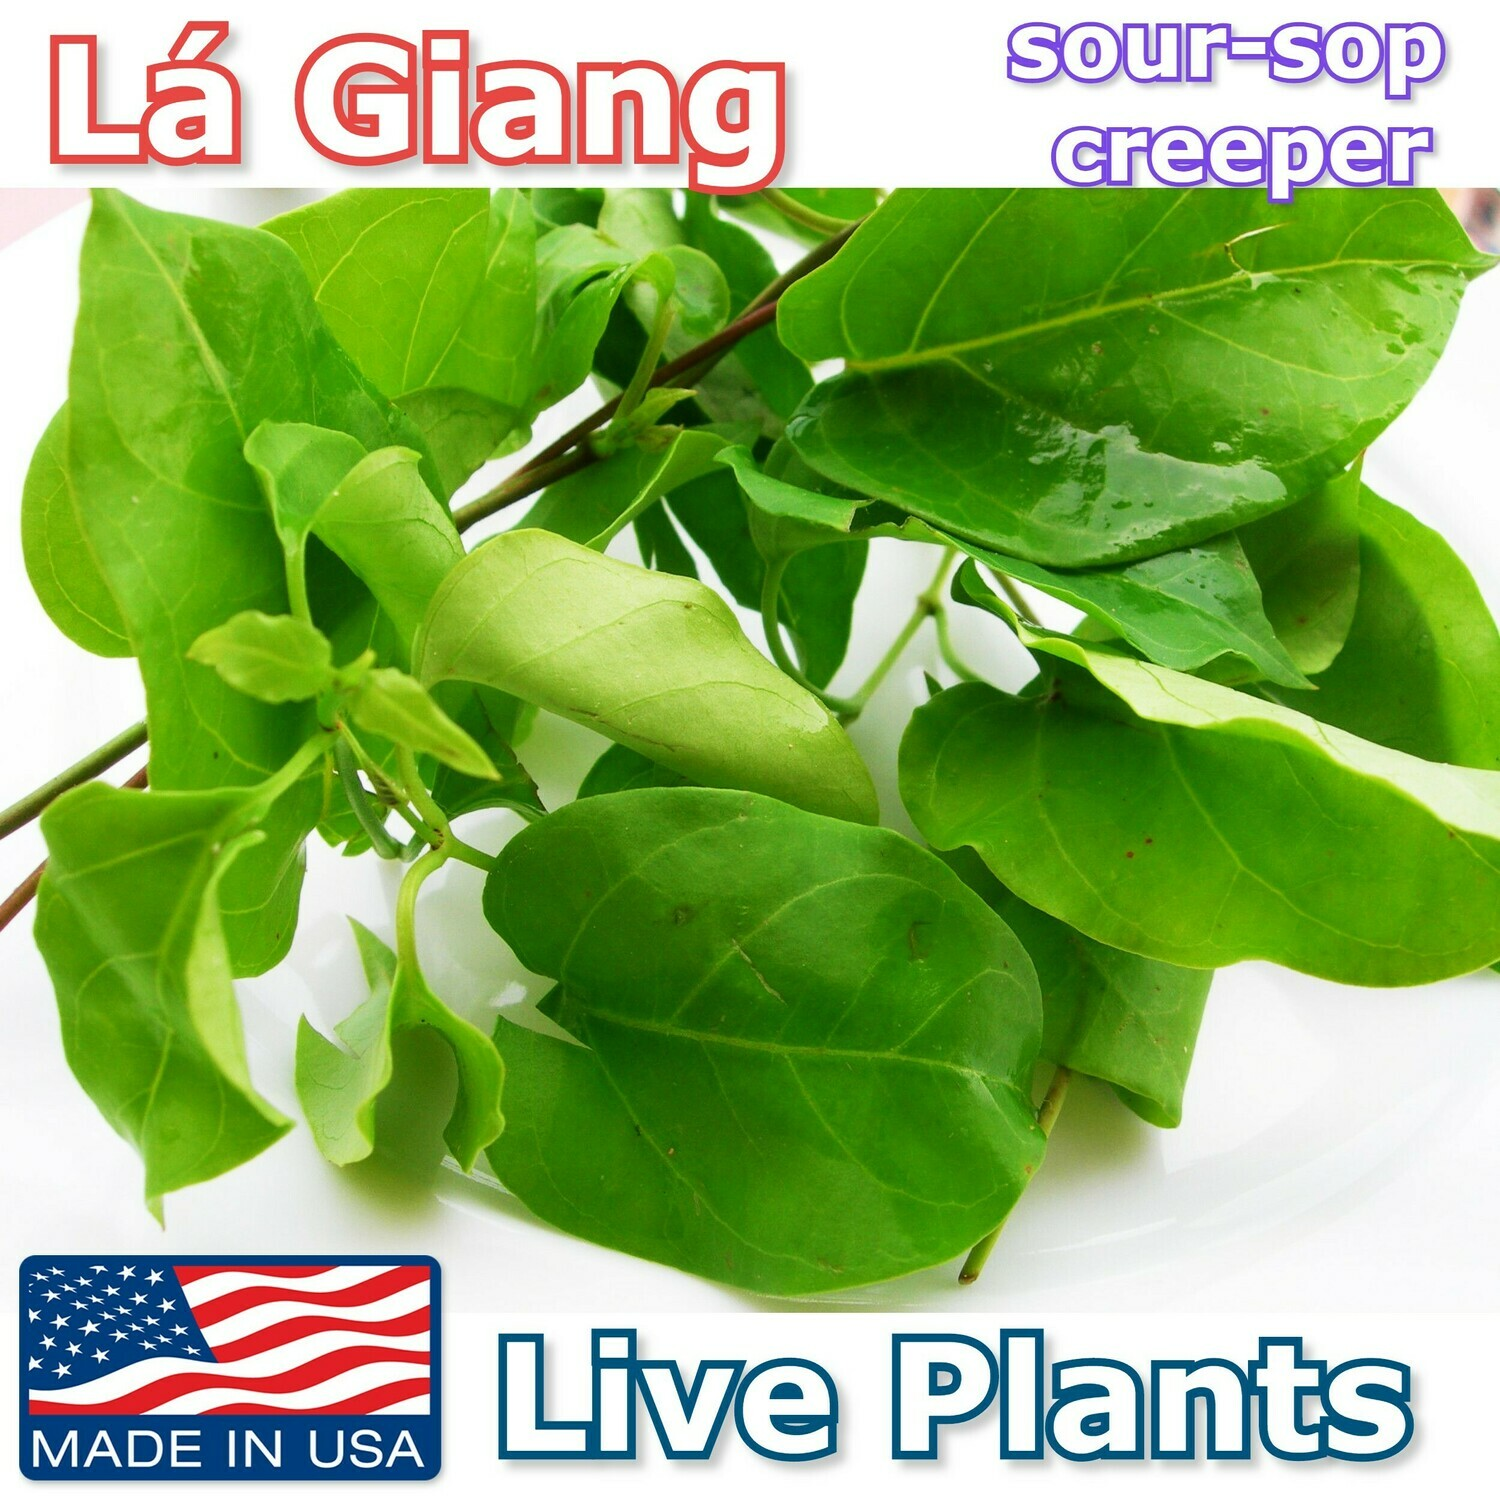 LA GIANG River Leaf Sour-Sop Creeper